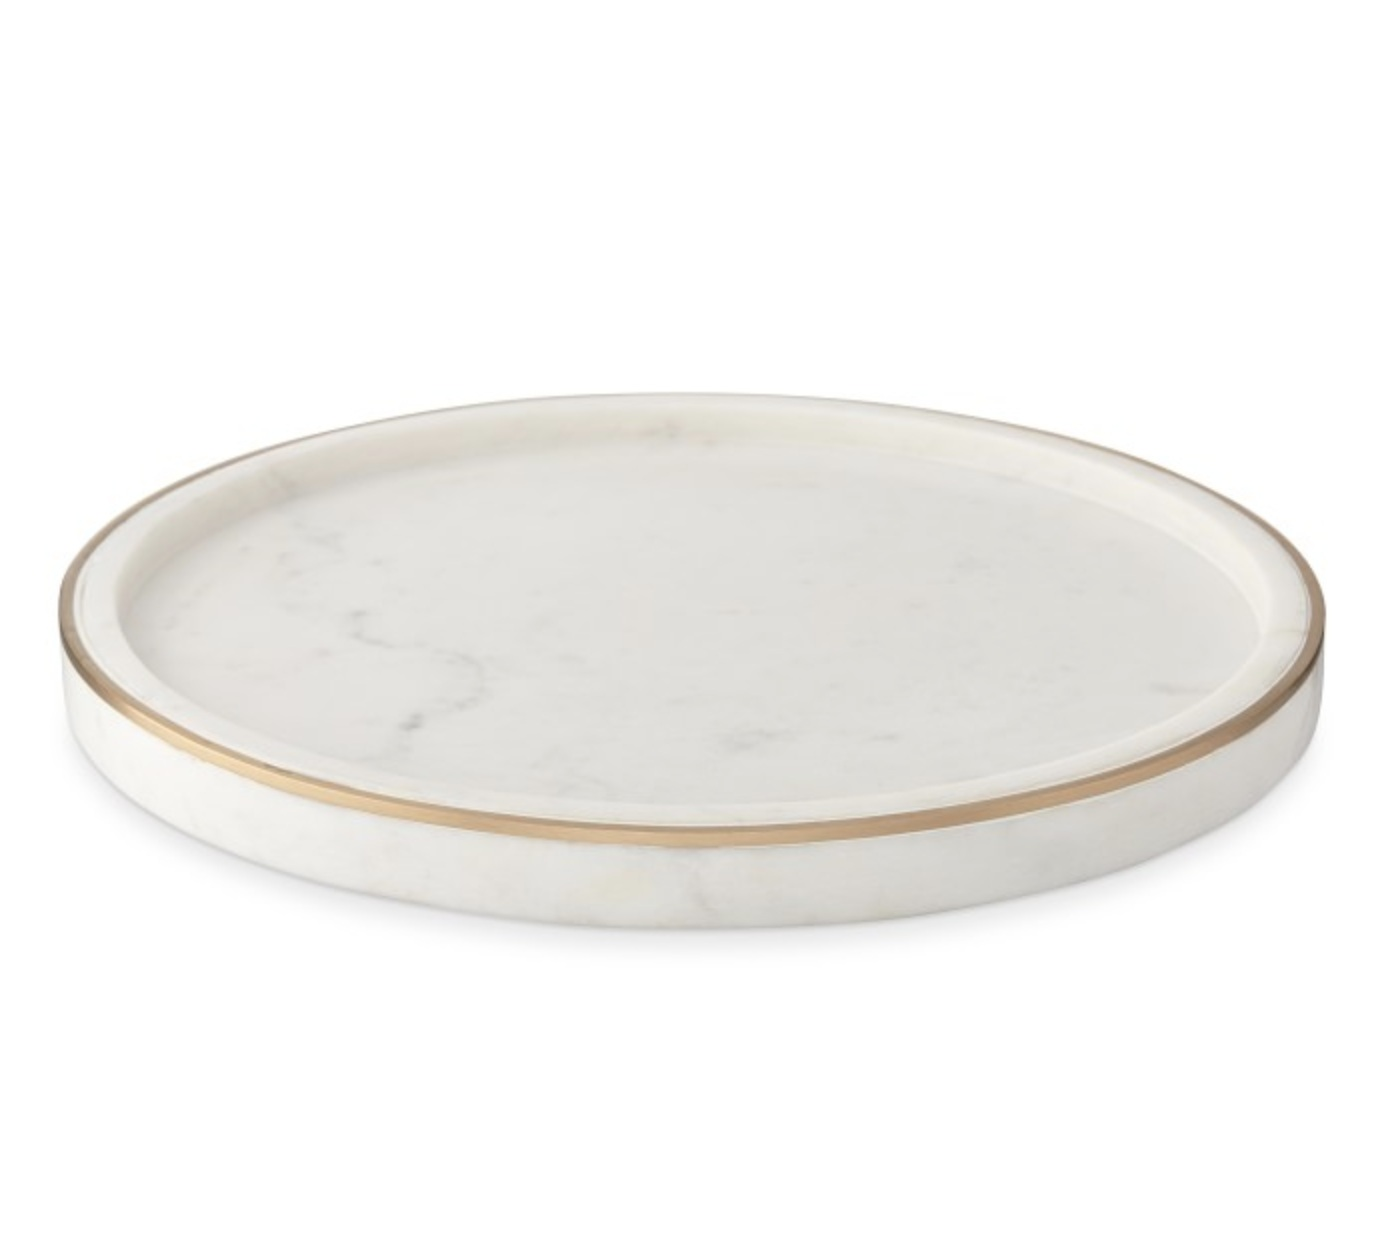 Marble & Brass - Vanity tray, $55; Williams-Sonoma